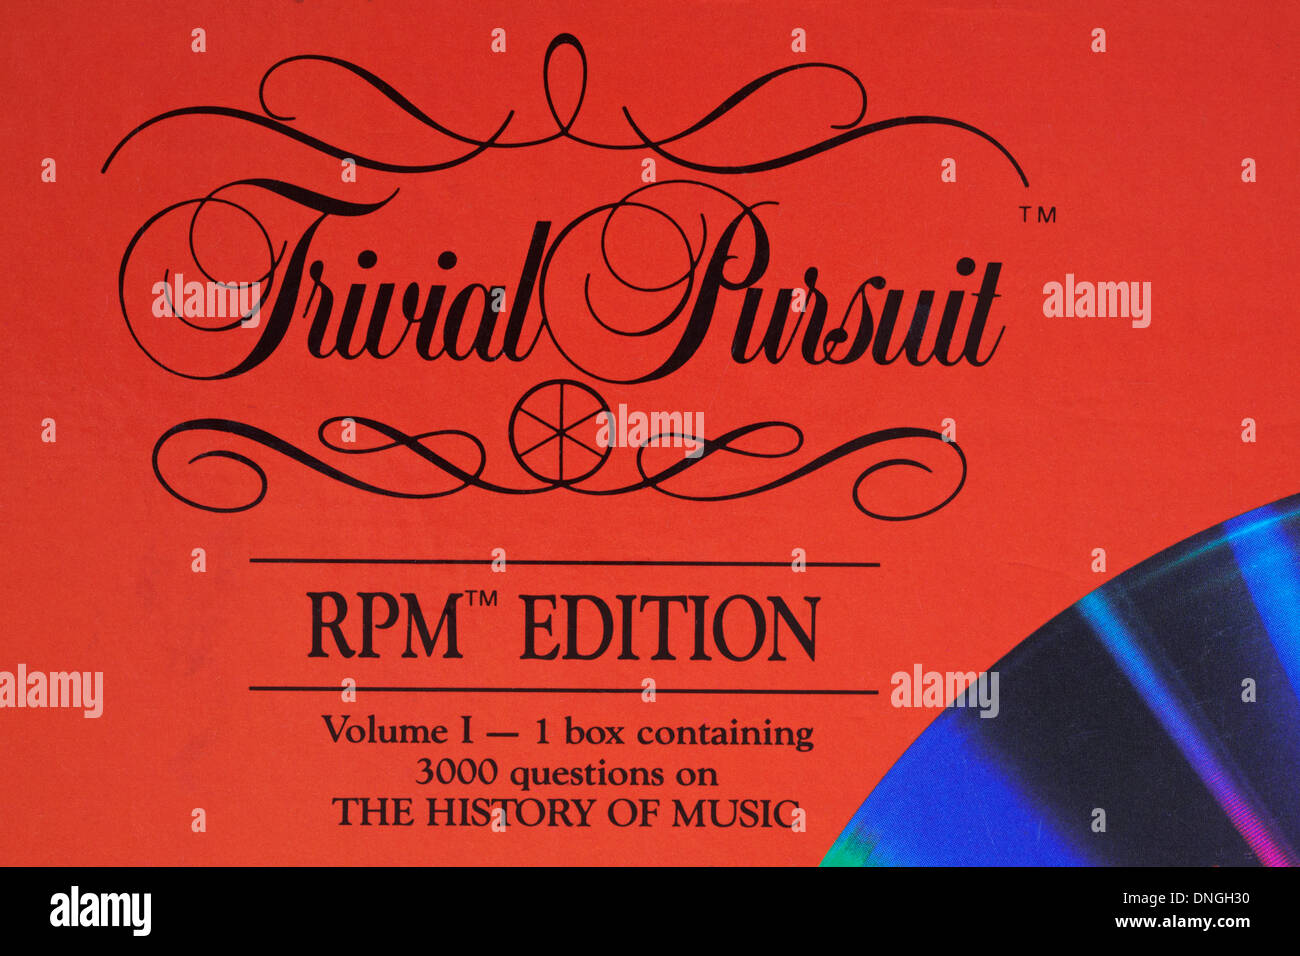 Trivial Pursuit RPM edition - The History of Music - Stock Image